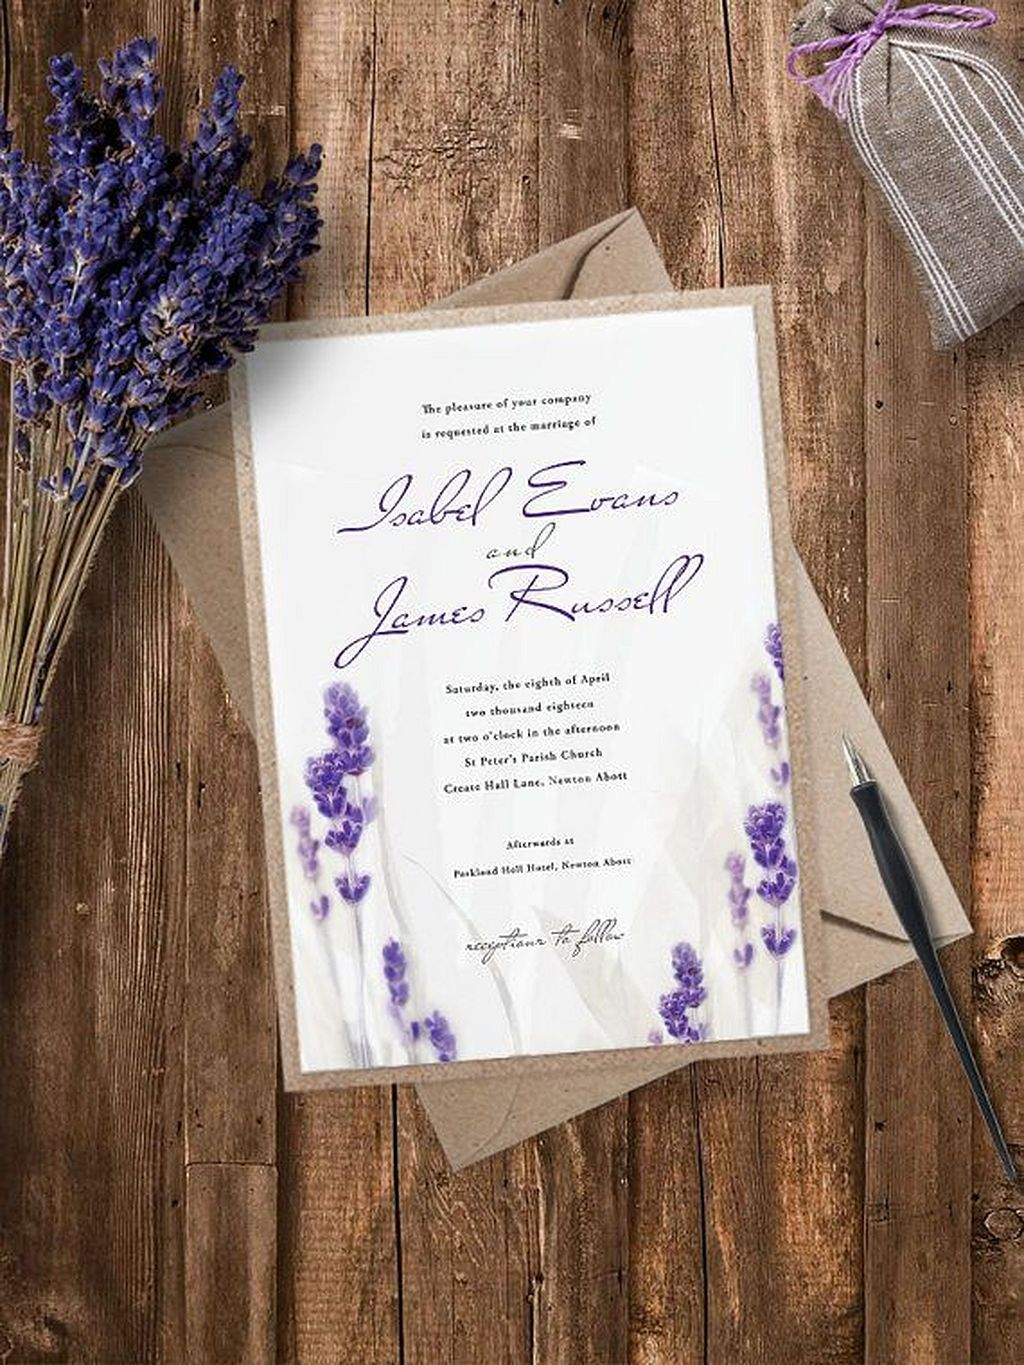 Tips For Looking Your Best On Your Wedding Day Luxebc Lavender Wedding Invitations Lavender Wedding Wedding Invitation Inspiration